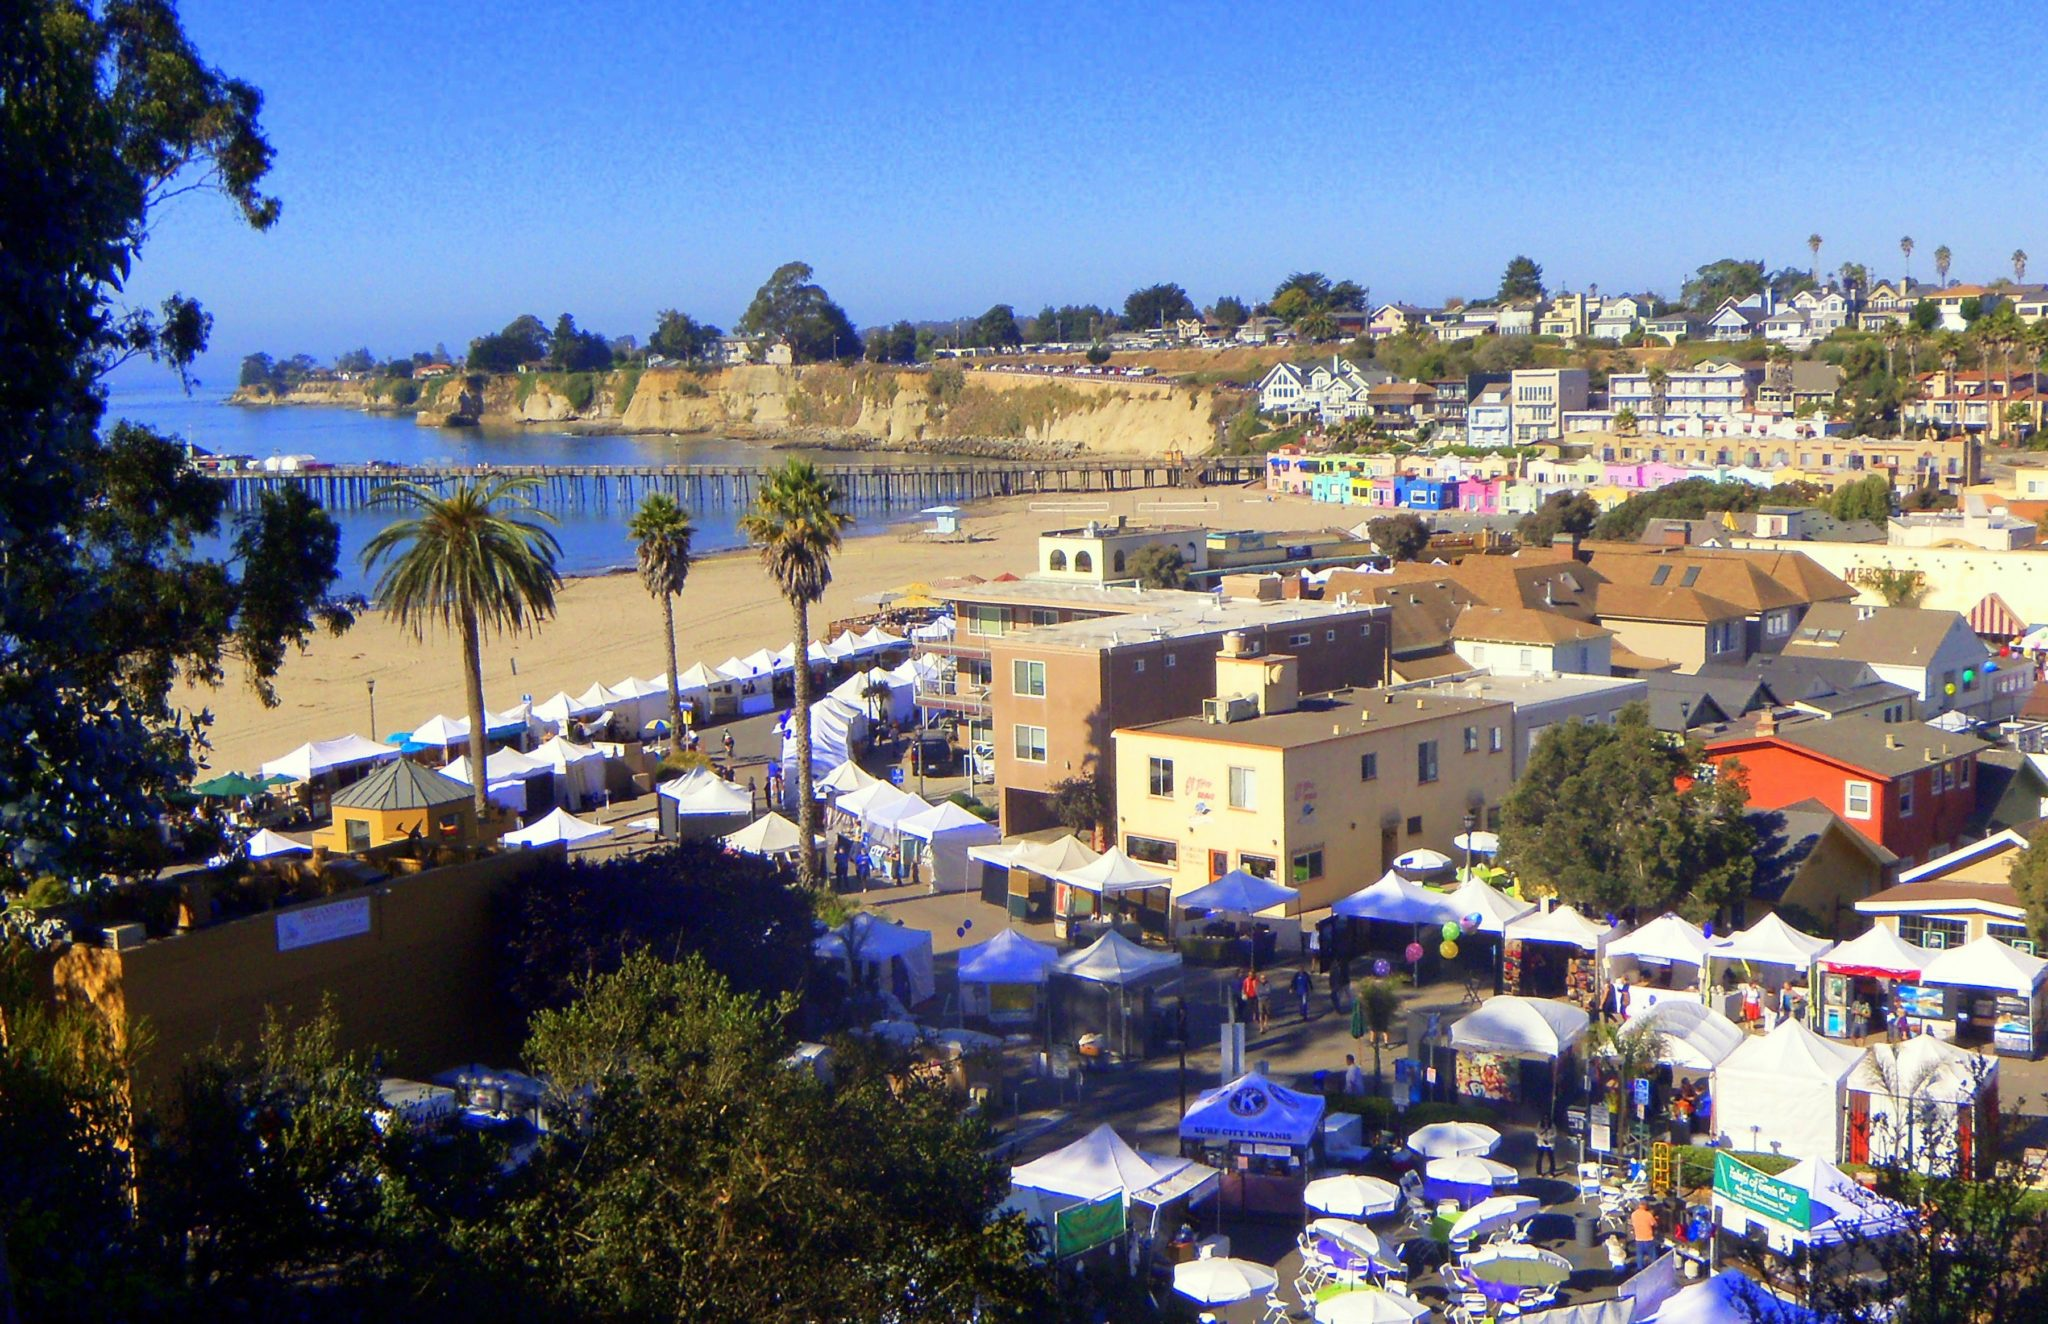 Capitola Art and Wine Festival in Capitola Village